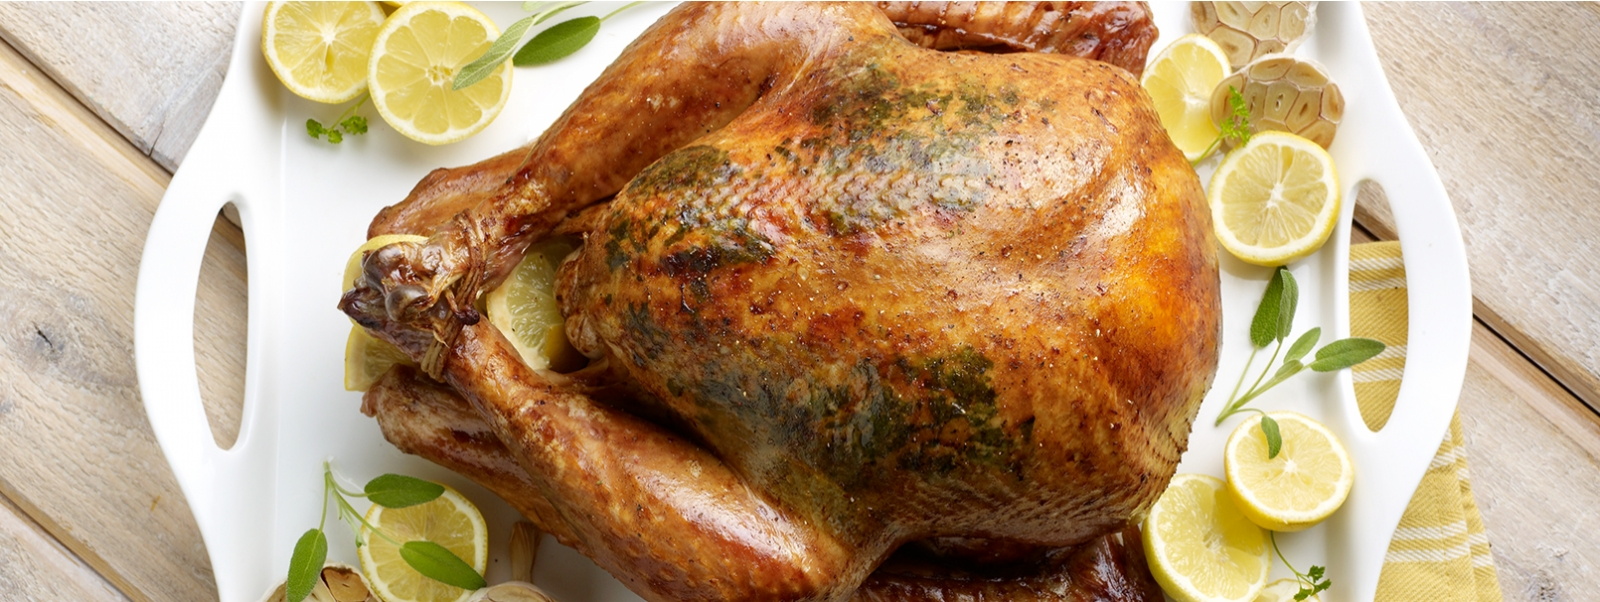 Lemon Herb Roasted Turkey